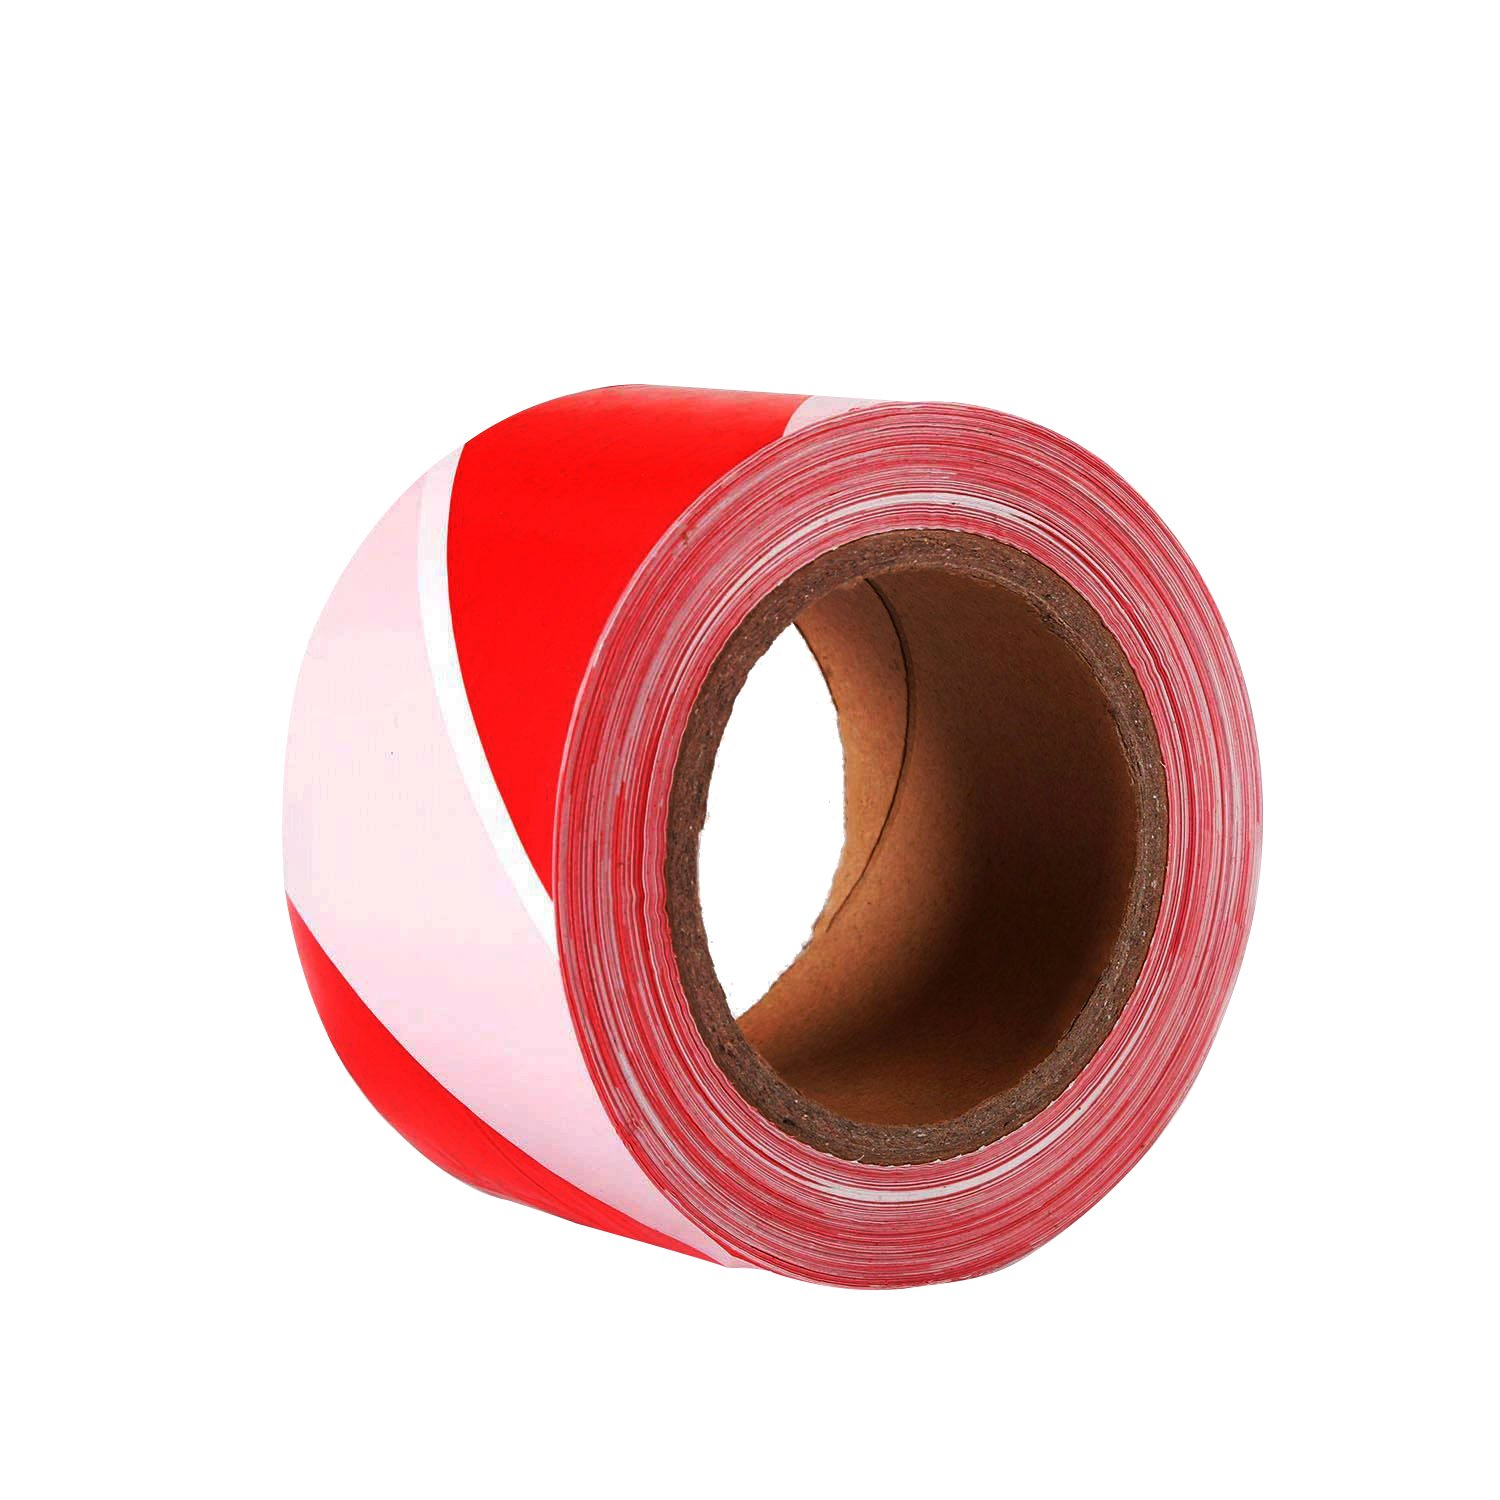 TopSoon Barricade Tape Striped Caution Tape Flagging Tape Red and White 2.8 Inch by 660 Feet Non Adhesive